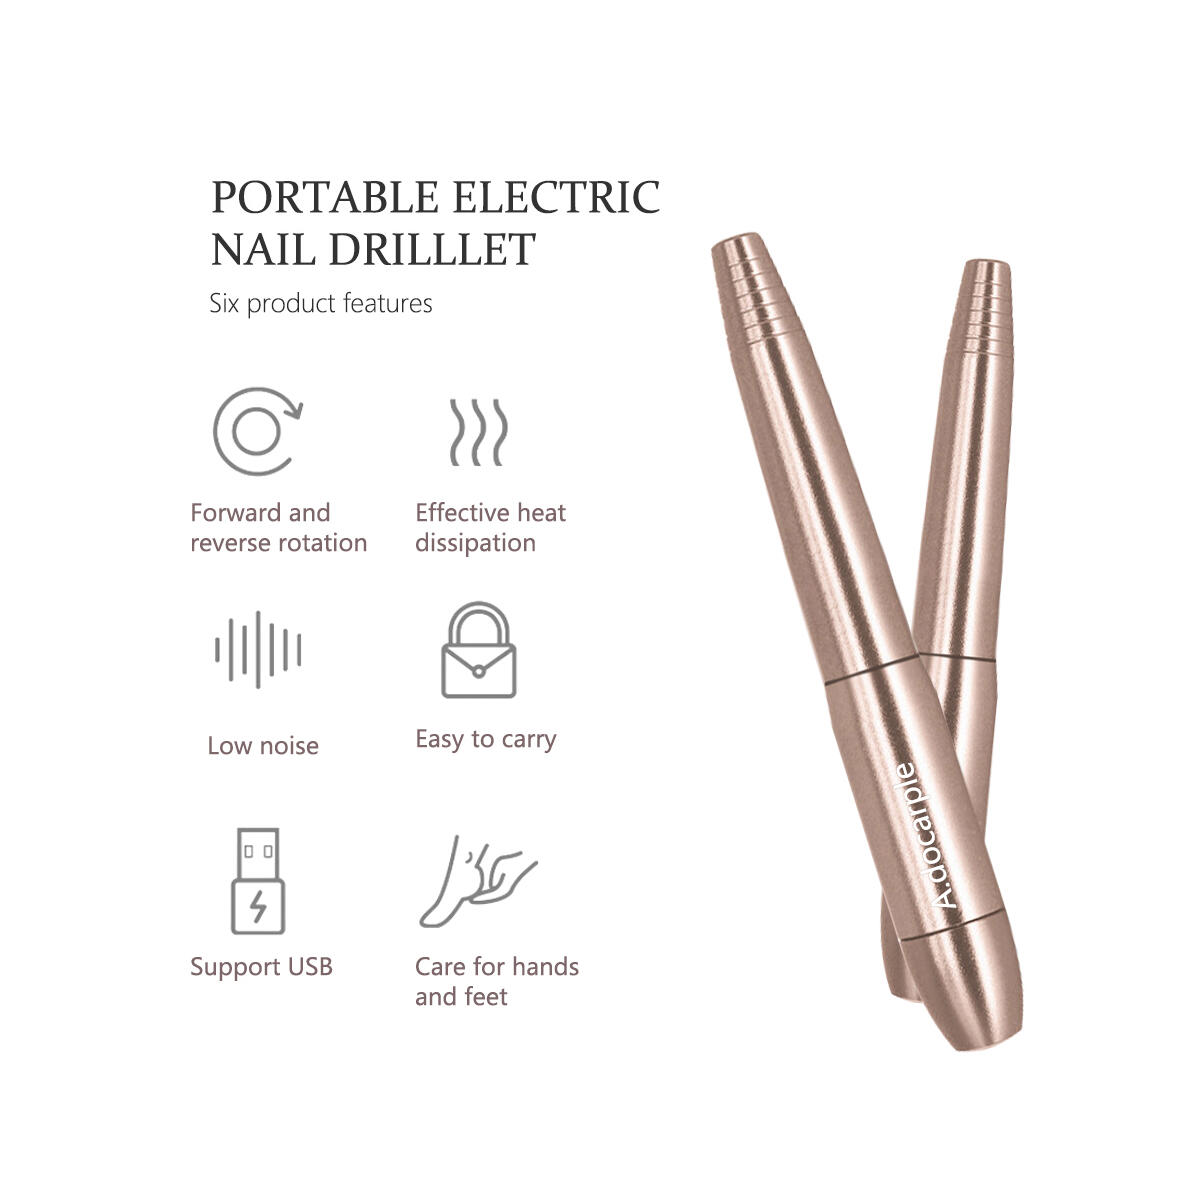 Electric Nail Drill - Portable Nail Drill Machine for Acrylic Nails, Nails Gel 20,000RPM Electric Nail File Manicure Pedicure Polishing Shape Tools with 11Pcs Nail Drill Bits and 16 Sanding Bands